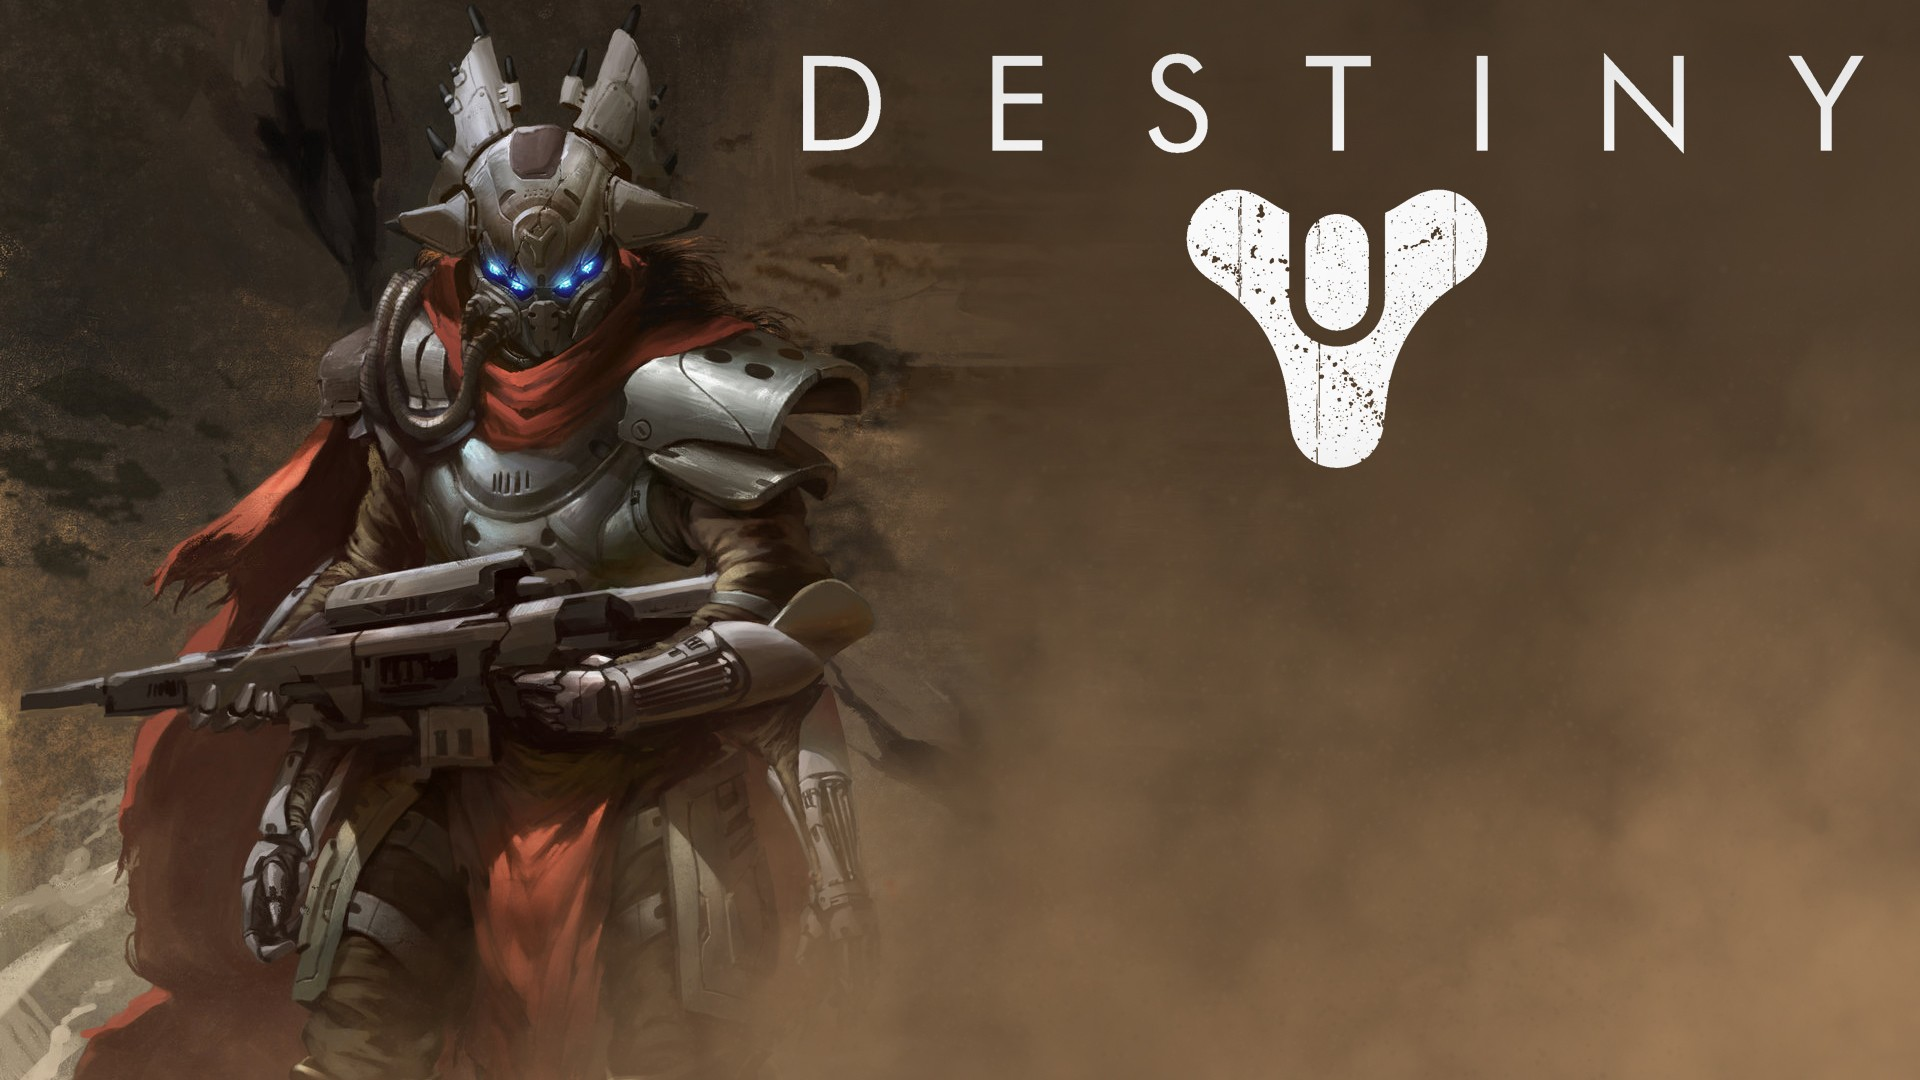 50 Amazing Destiny HD Wallpapers for Desktop (Free)